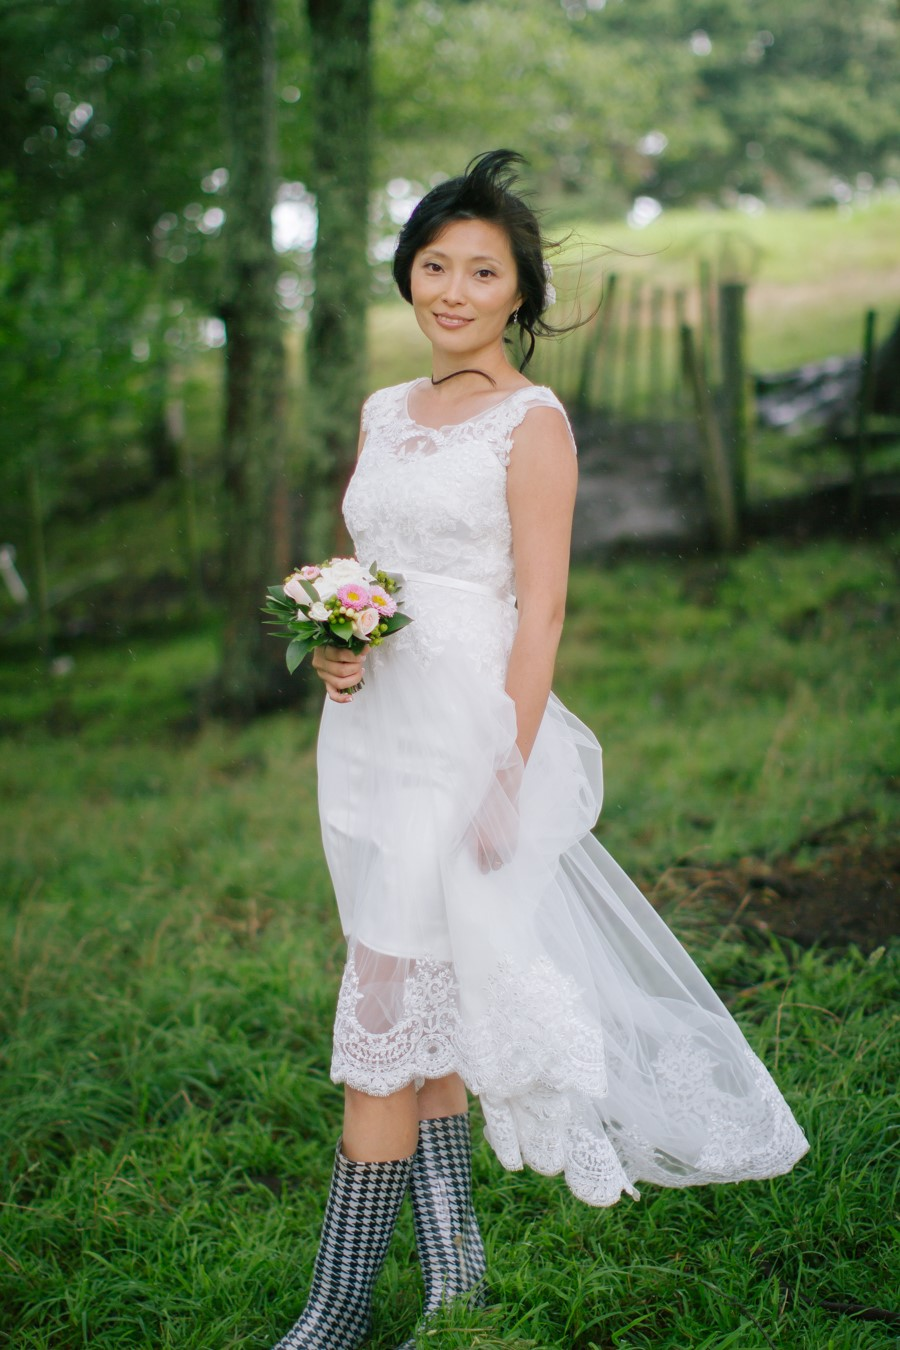 maungaturoto_wedding_nz_photographer_auckland-908